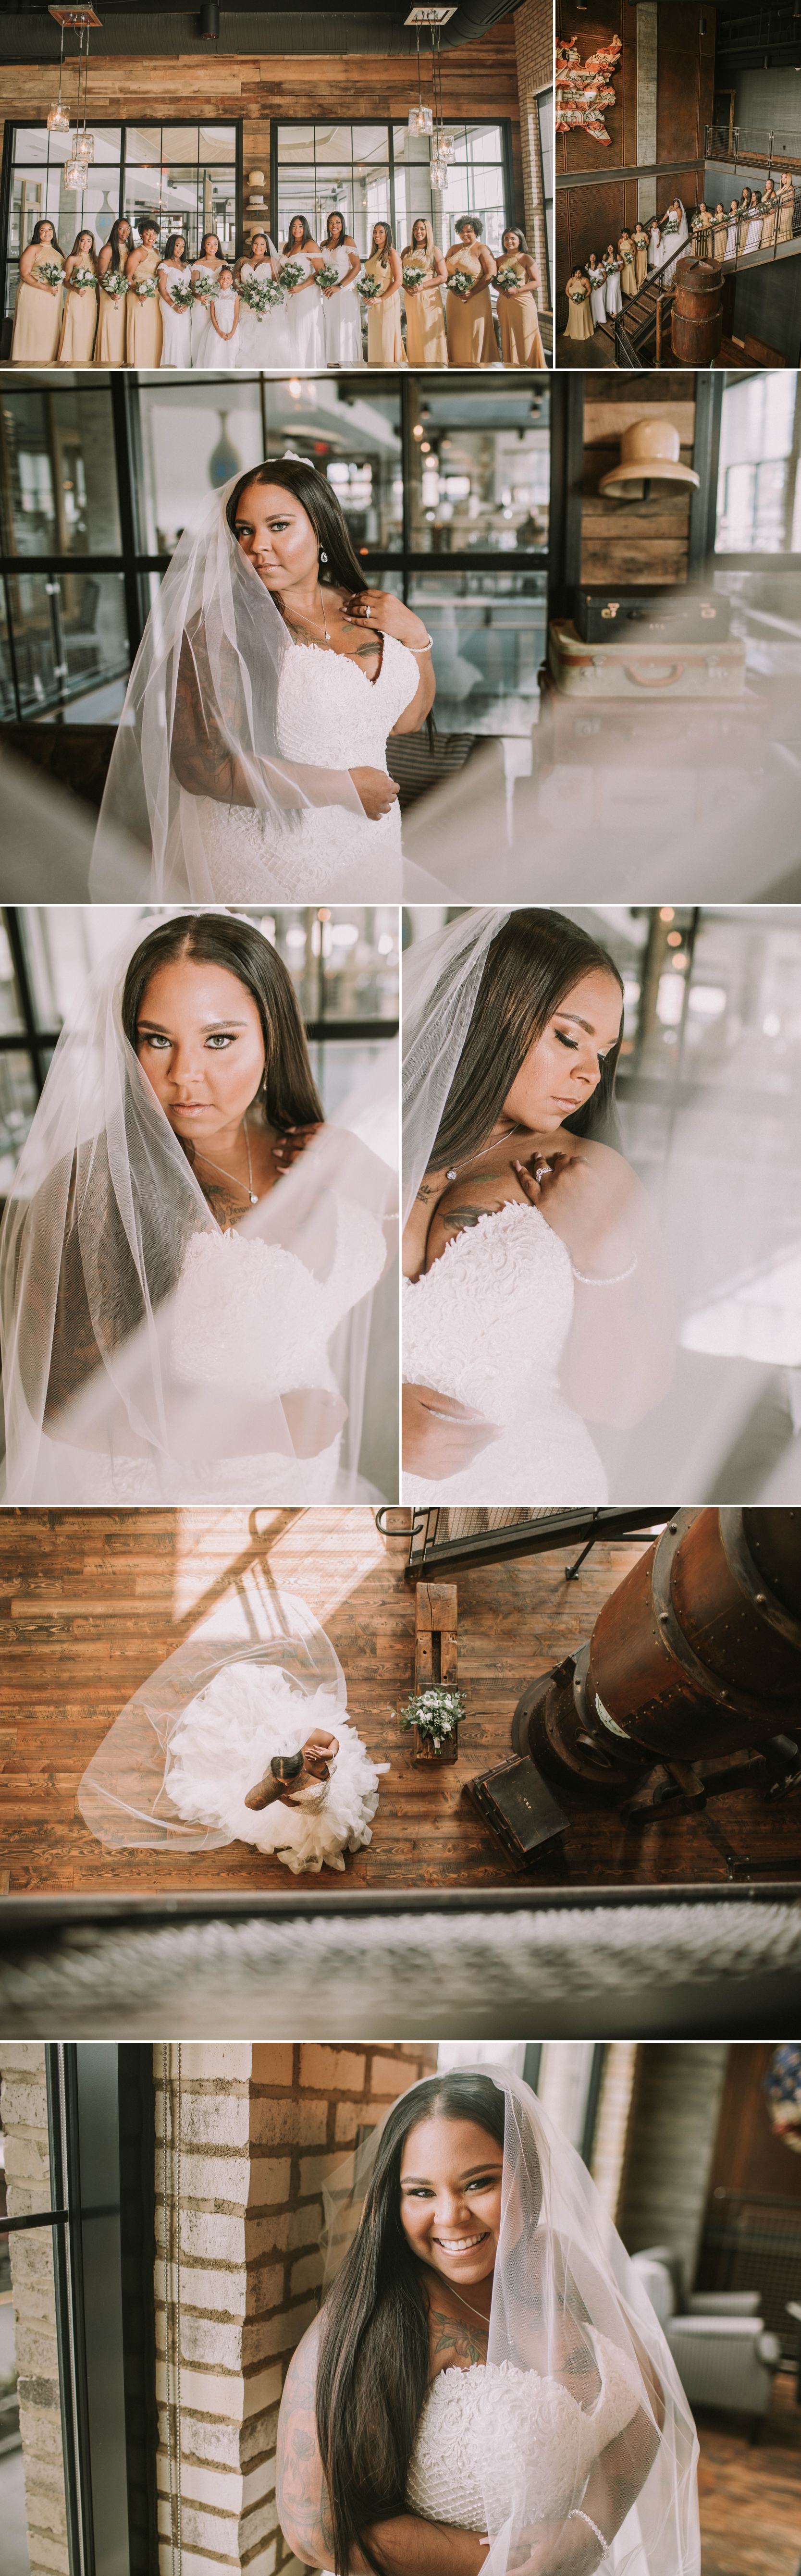 ironworks hotel bride bridesmaids wedding day carmel indiana